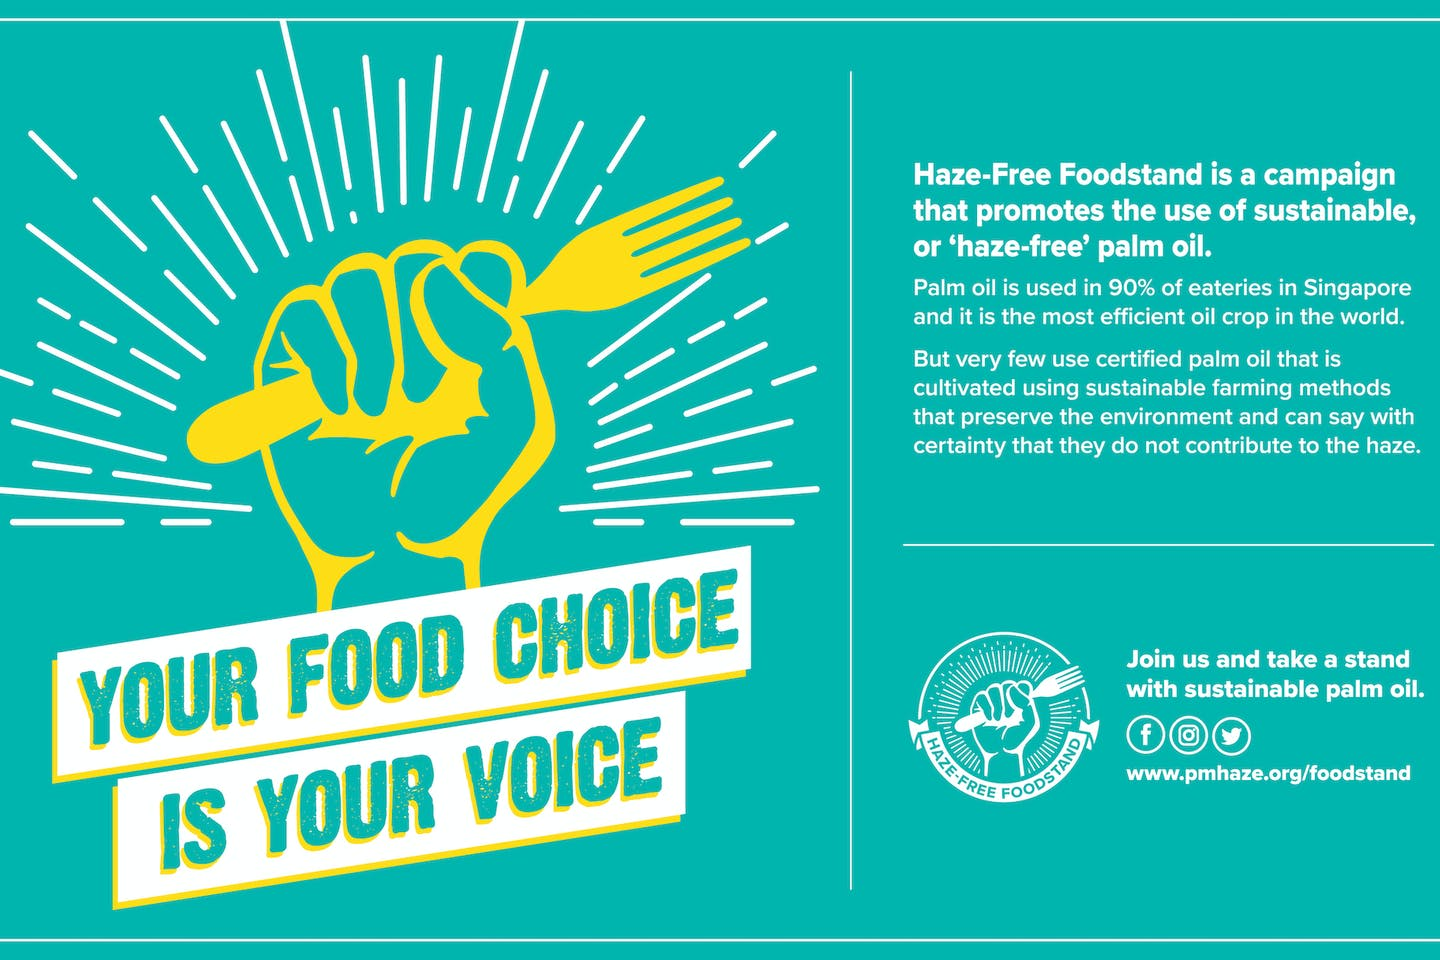 PM Haze launches haze-free foodstand campaign, encourages greater adoption of sustainable palm oil